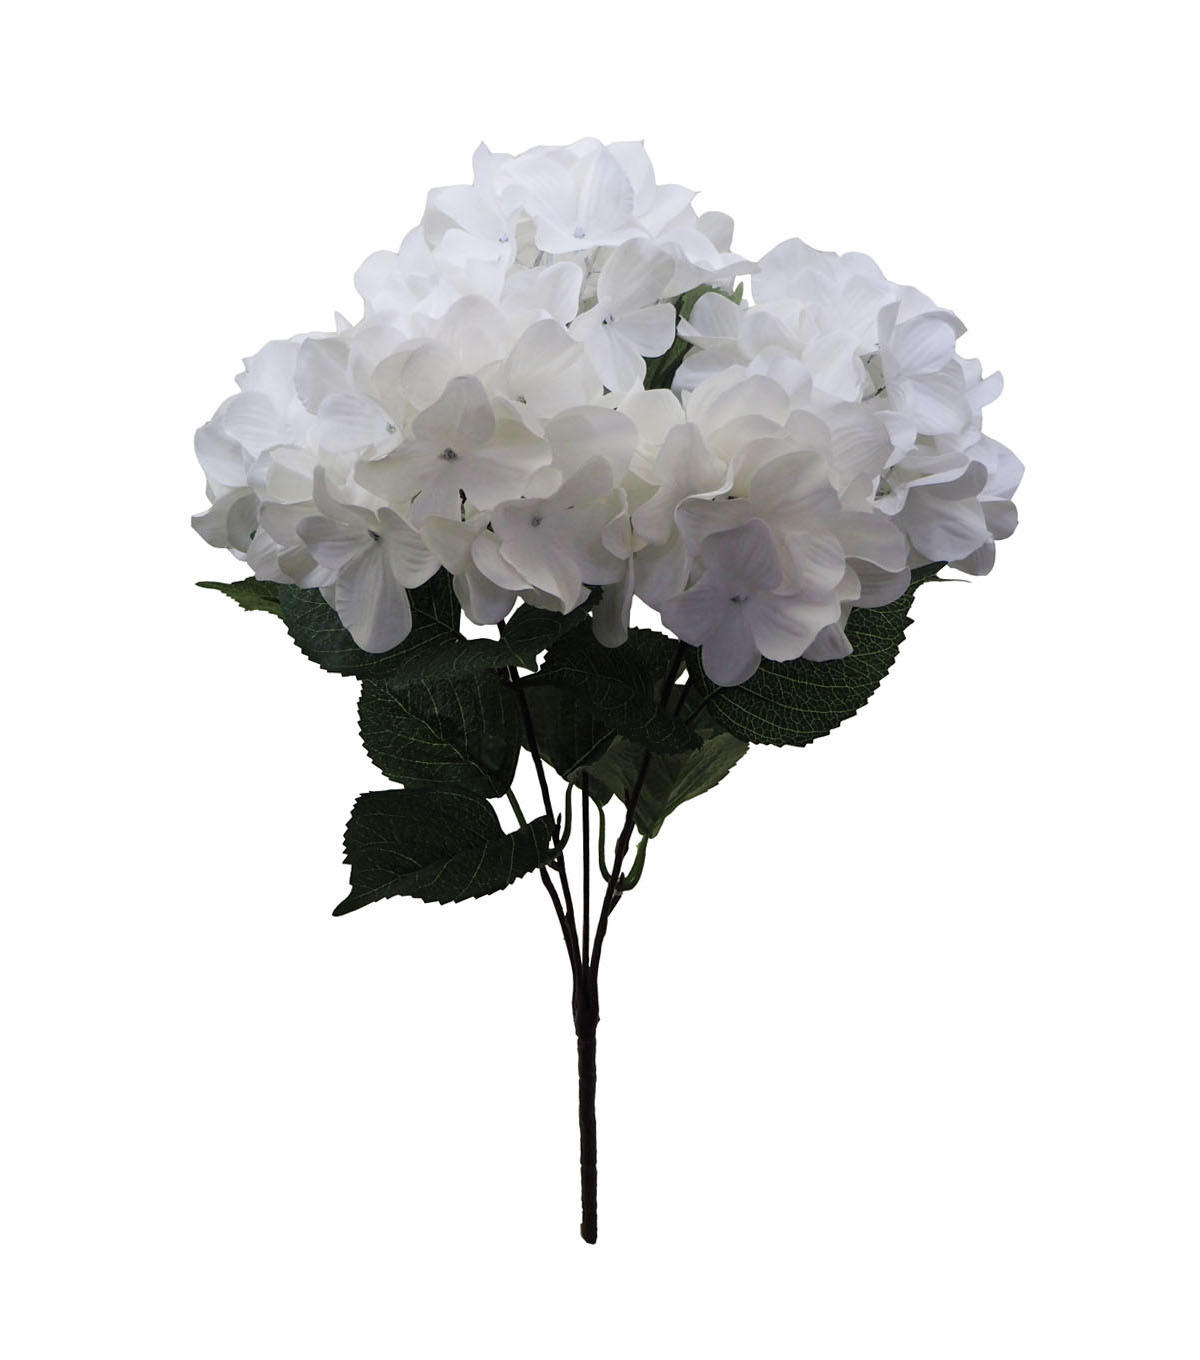 Blooming Holiday Christmas Water Resistant Hydrangea Bush-White